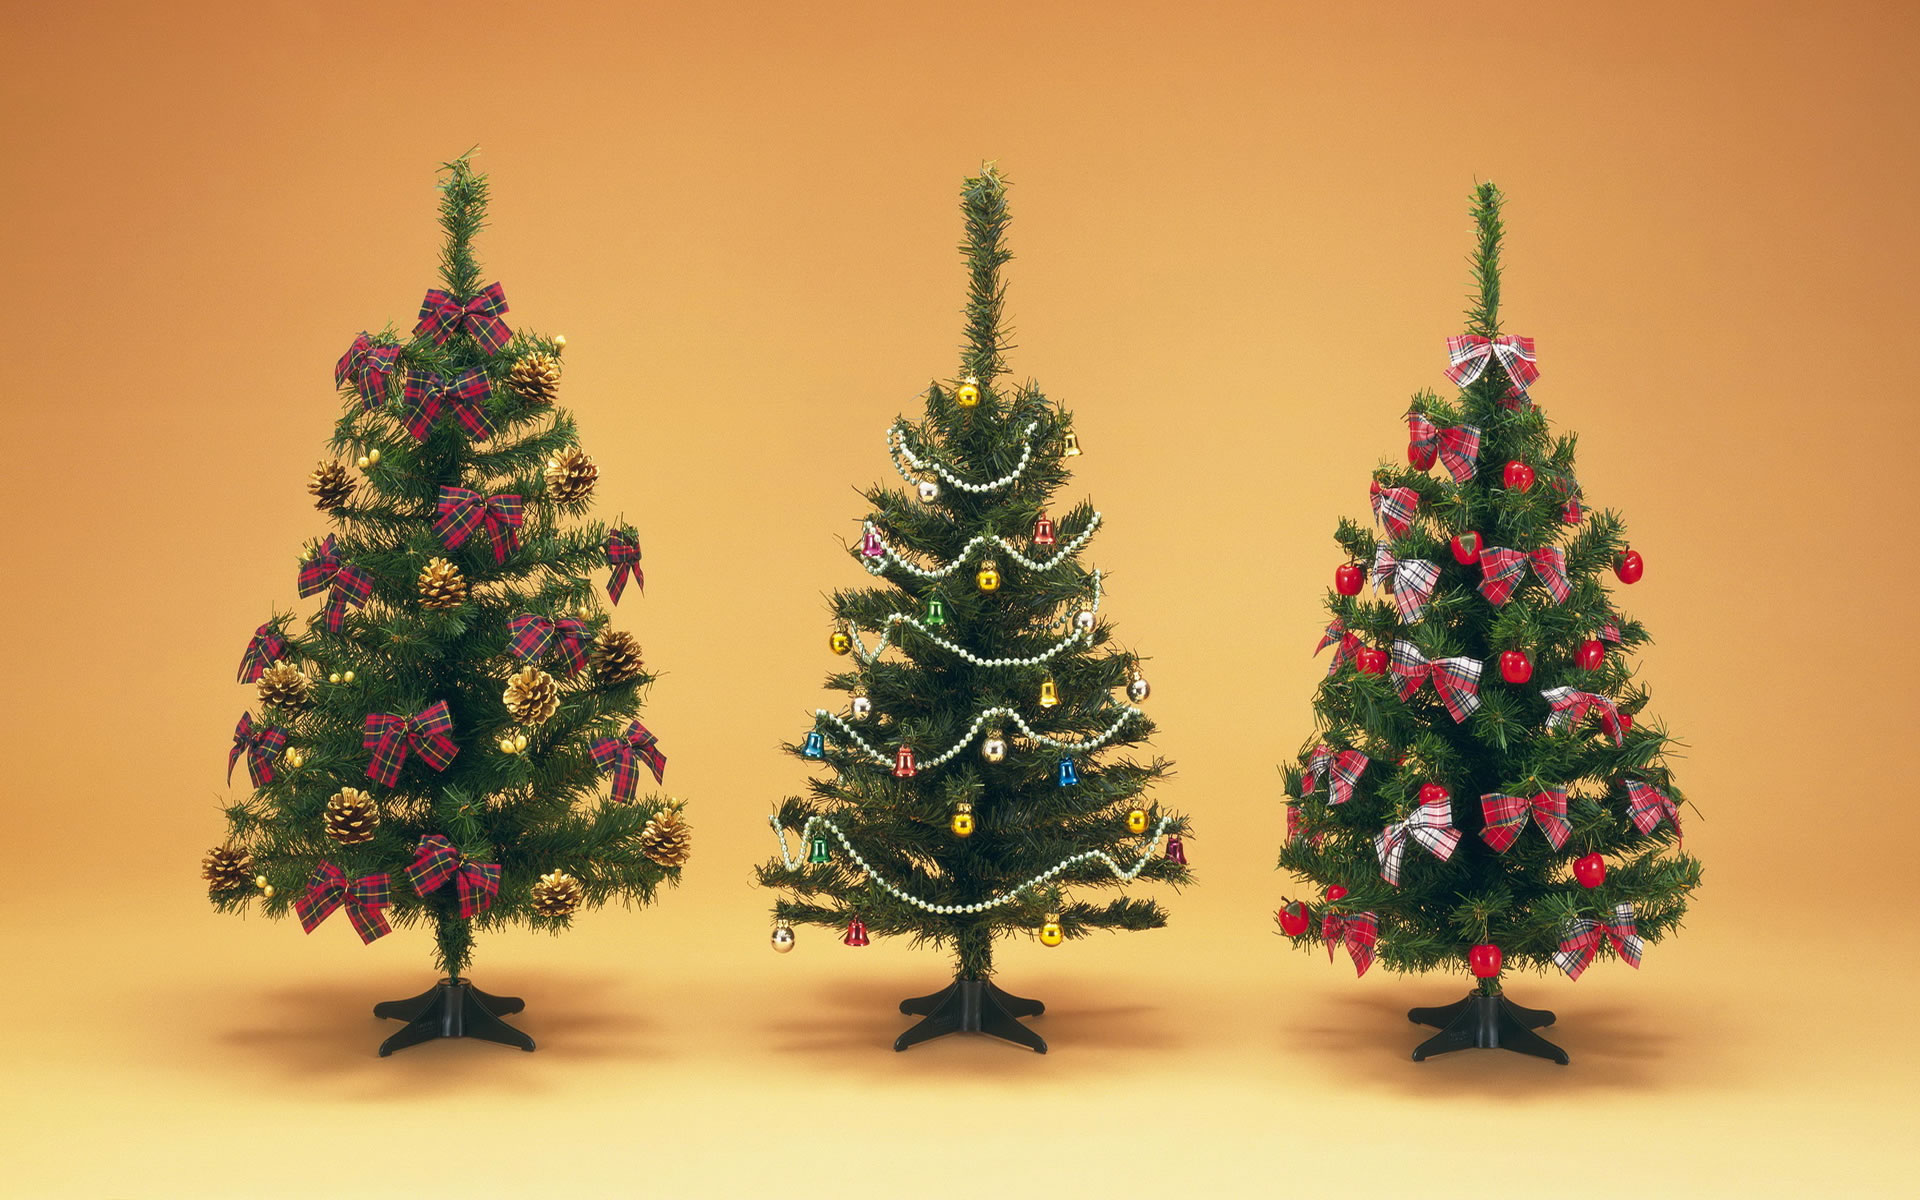 Rboles de navidad decorados wallpapers wallpapers - Arboles navidenos decorados ...